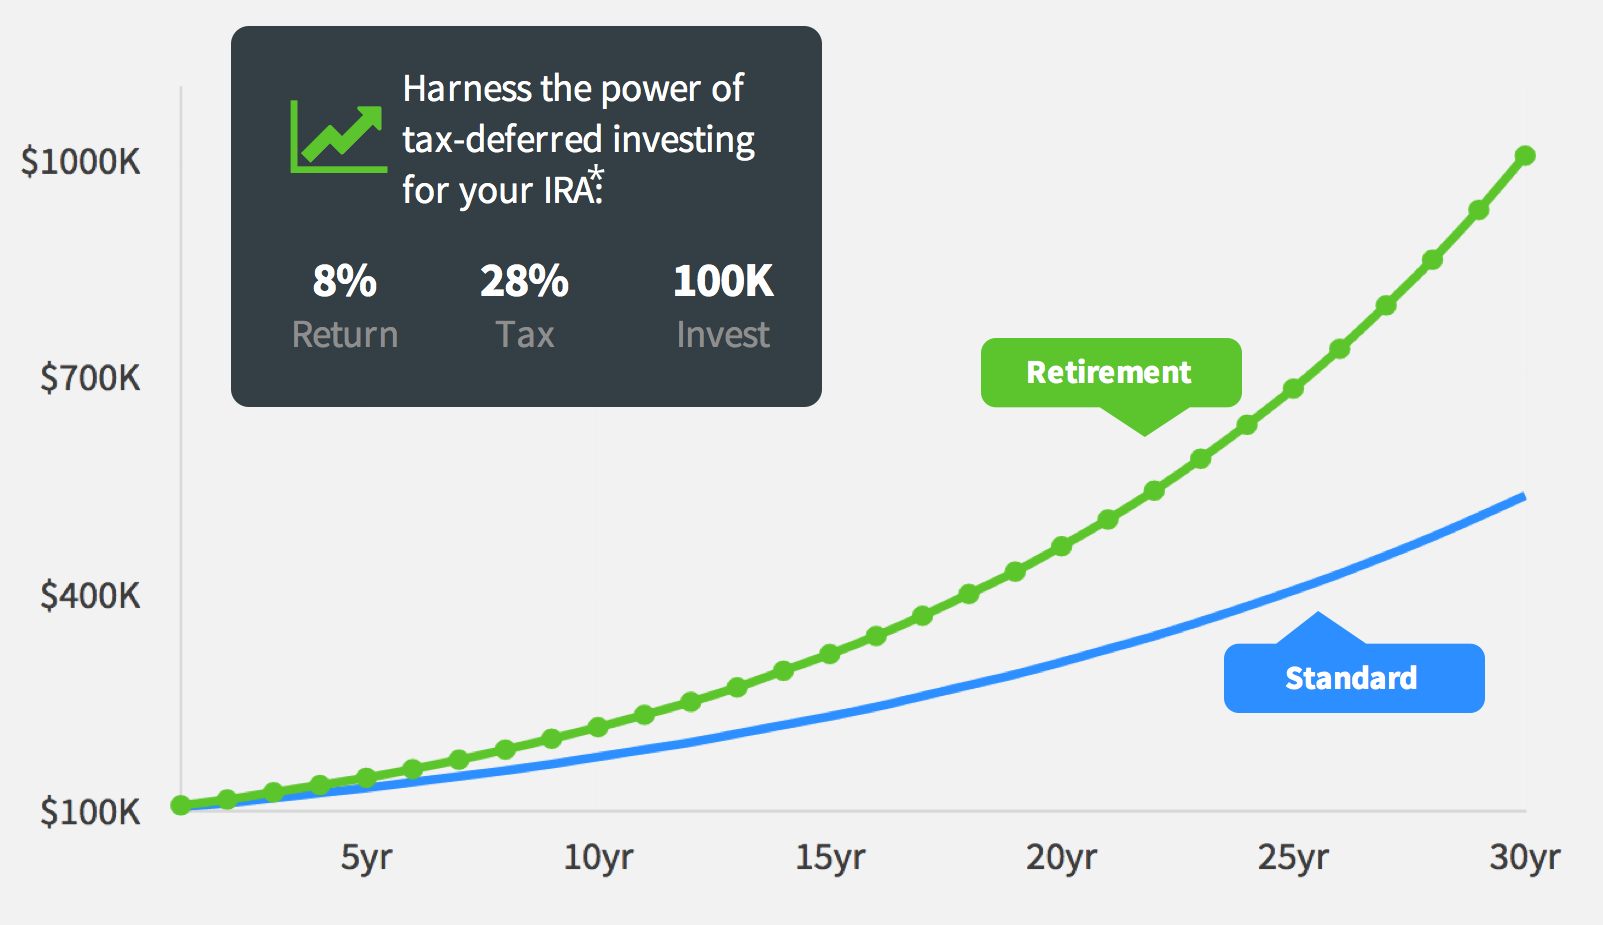 IRA Tax Deferred Investing